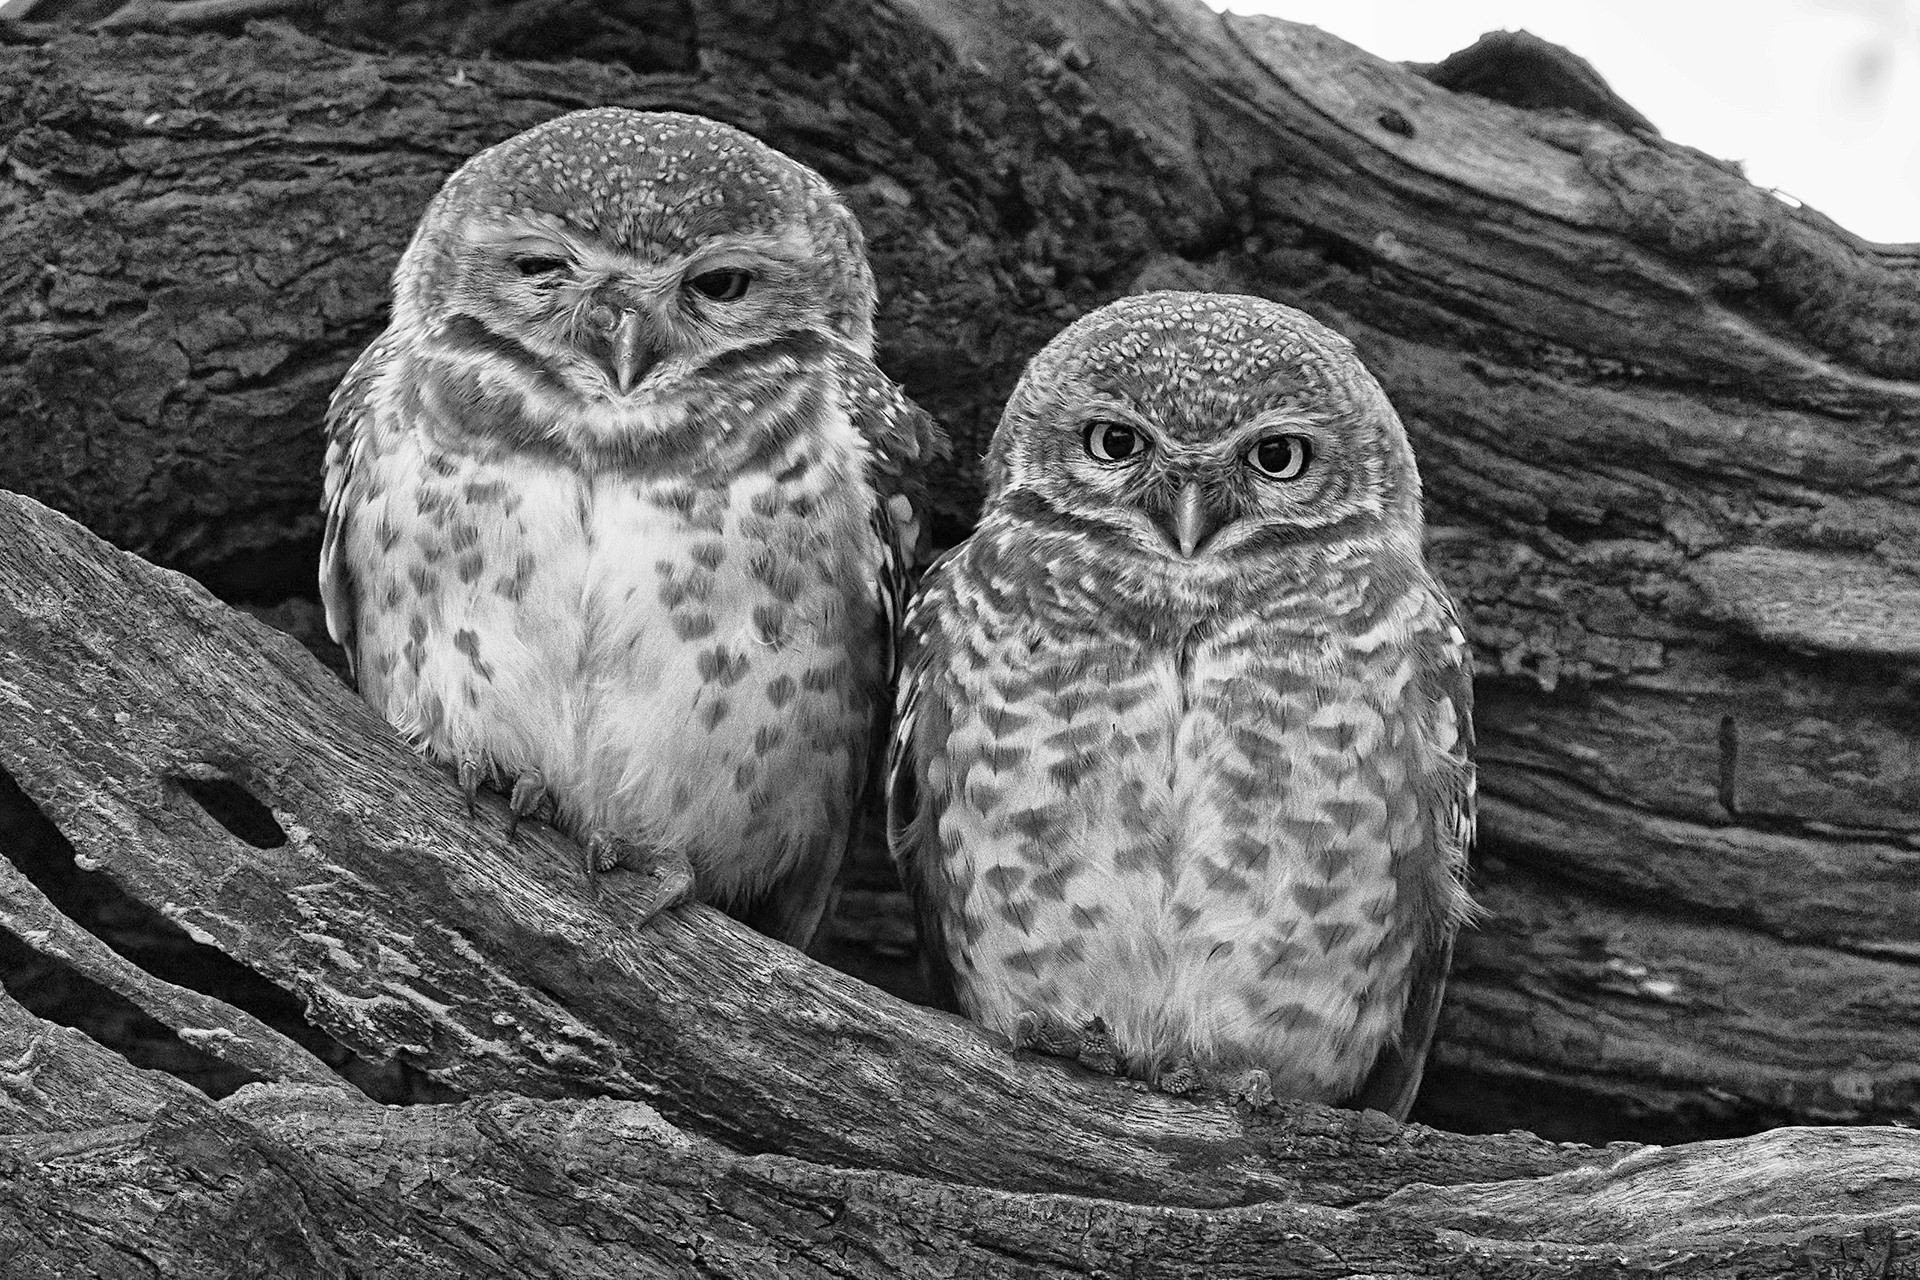 Birds 255 - Spotted Owlet